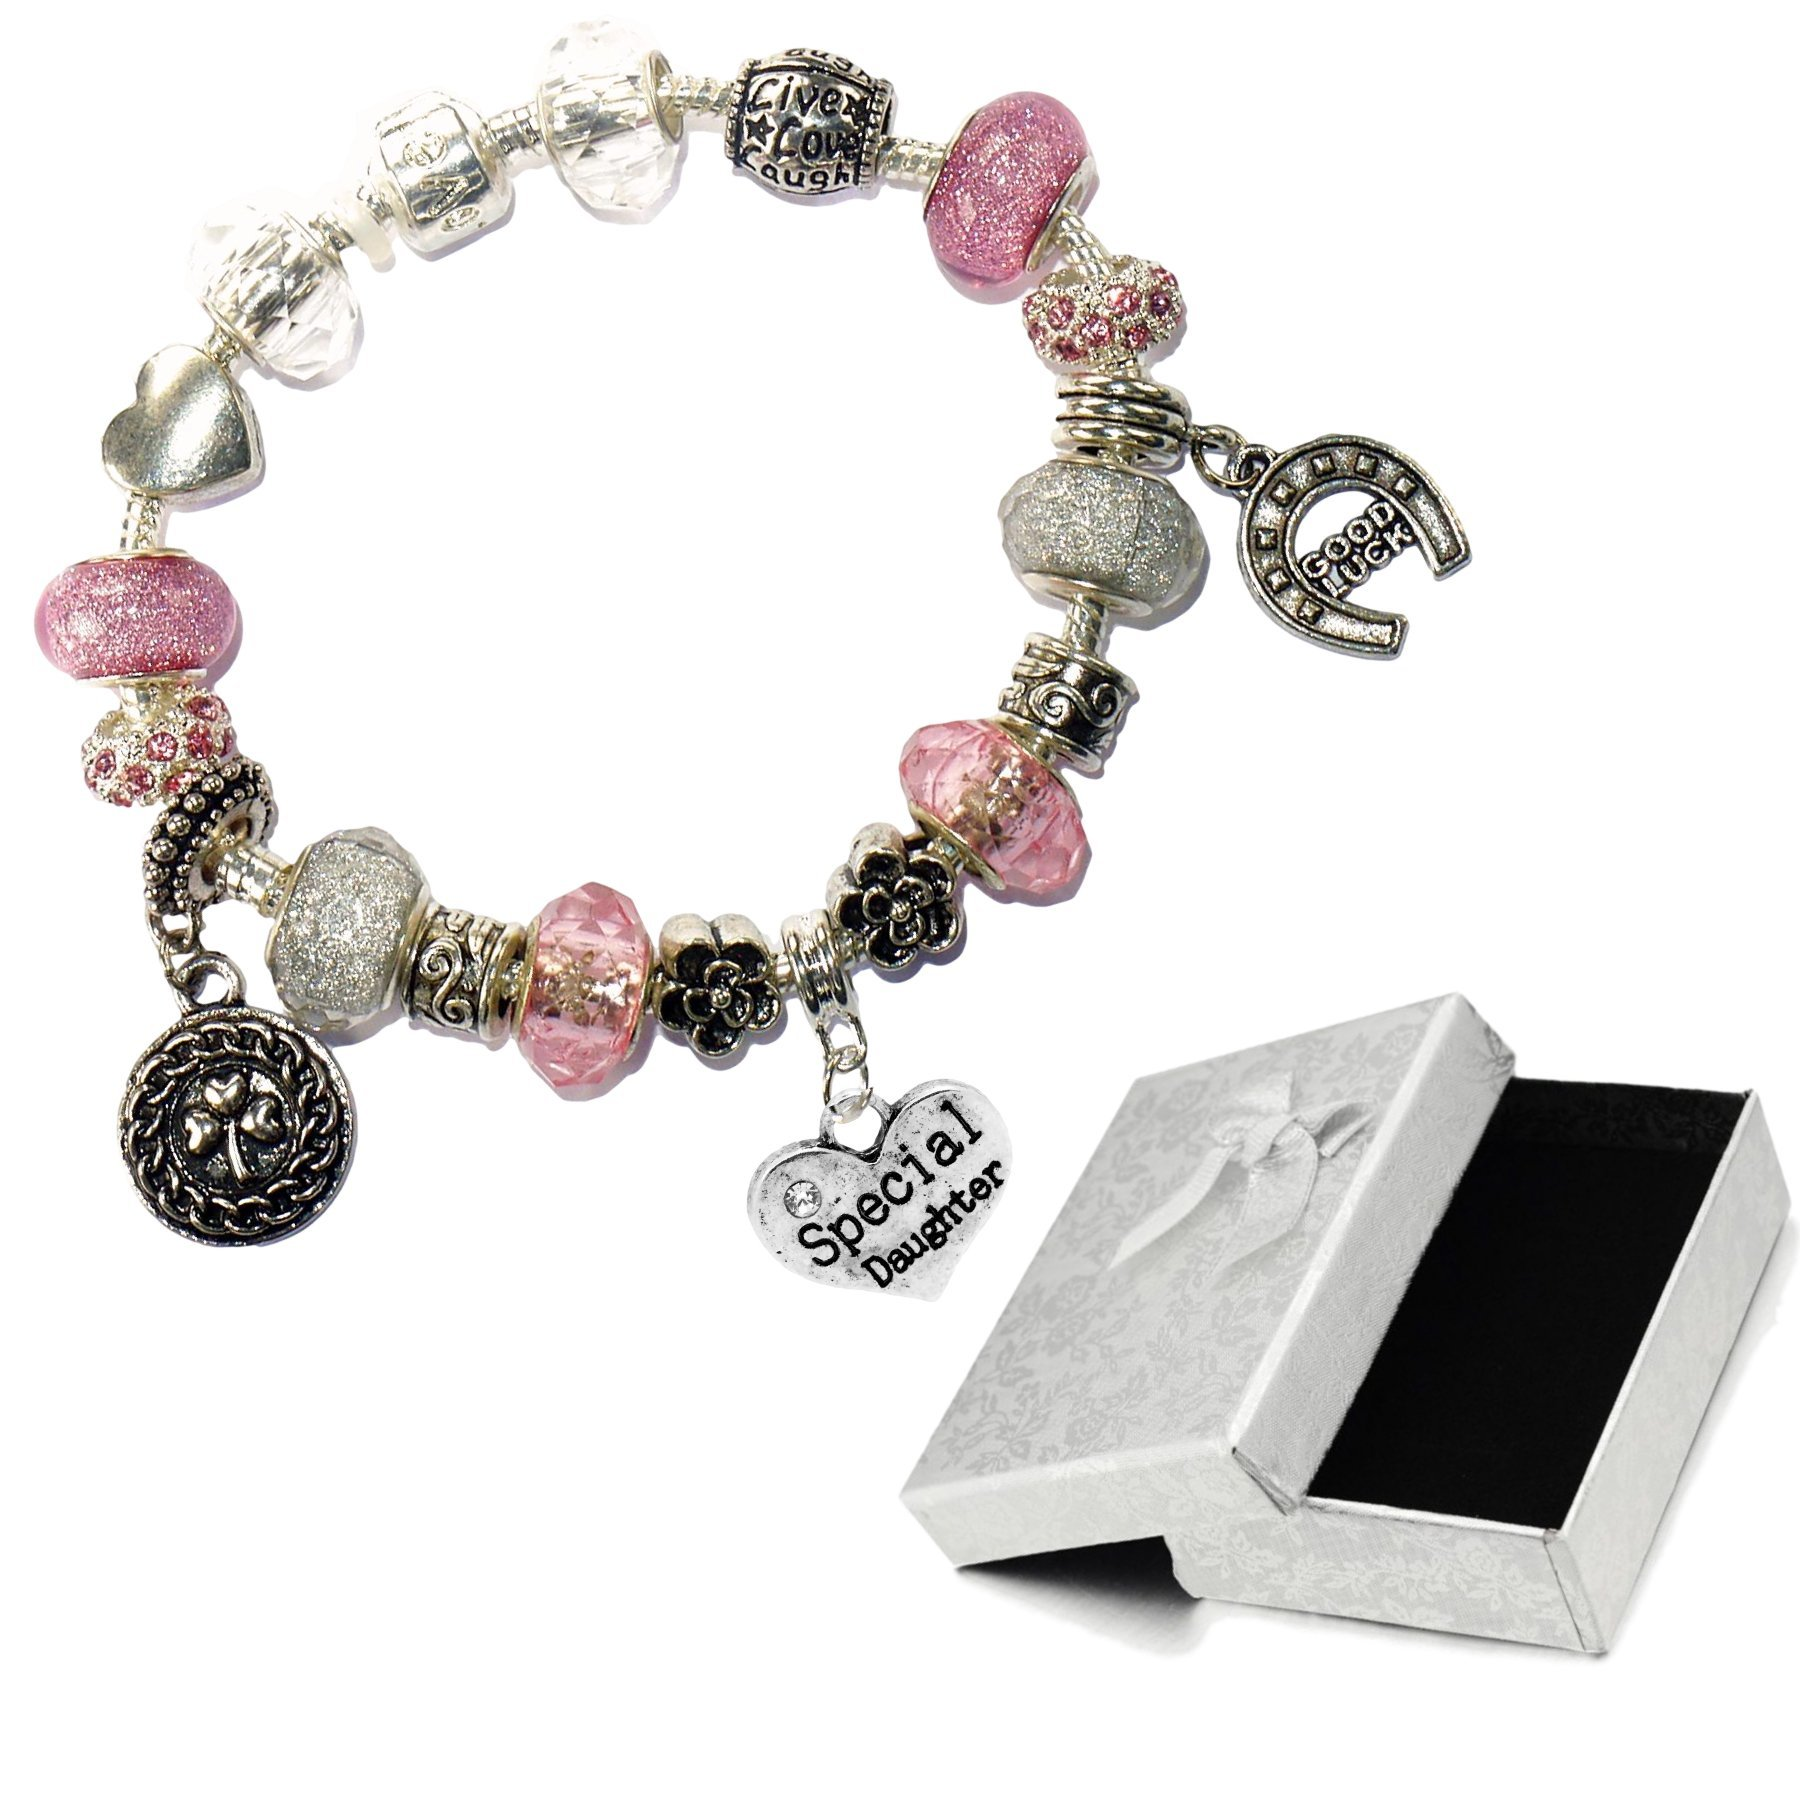 Charm Buddy Special Daughter Pink Silver Crystal Good Luck Pandora Style Bracelet With Charms Gift Box by Charm Buddy (Image #1)